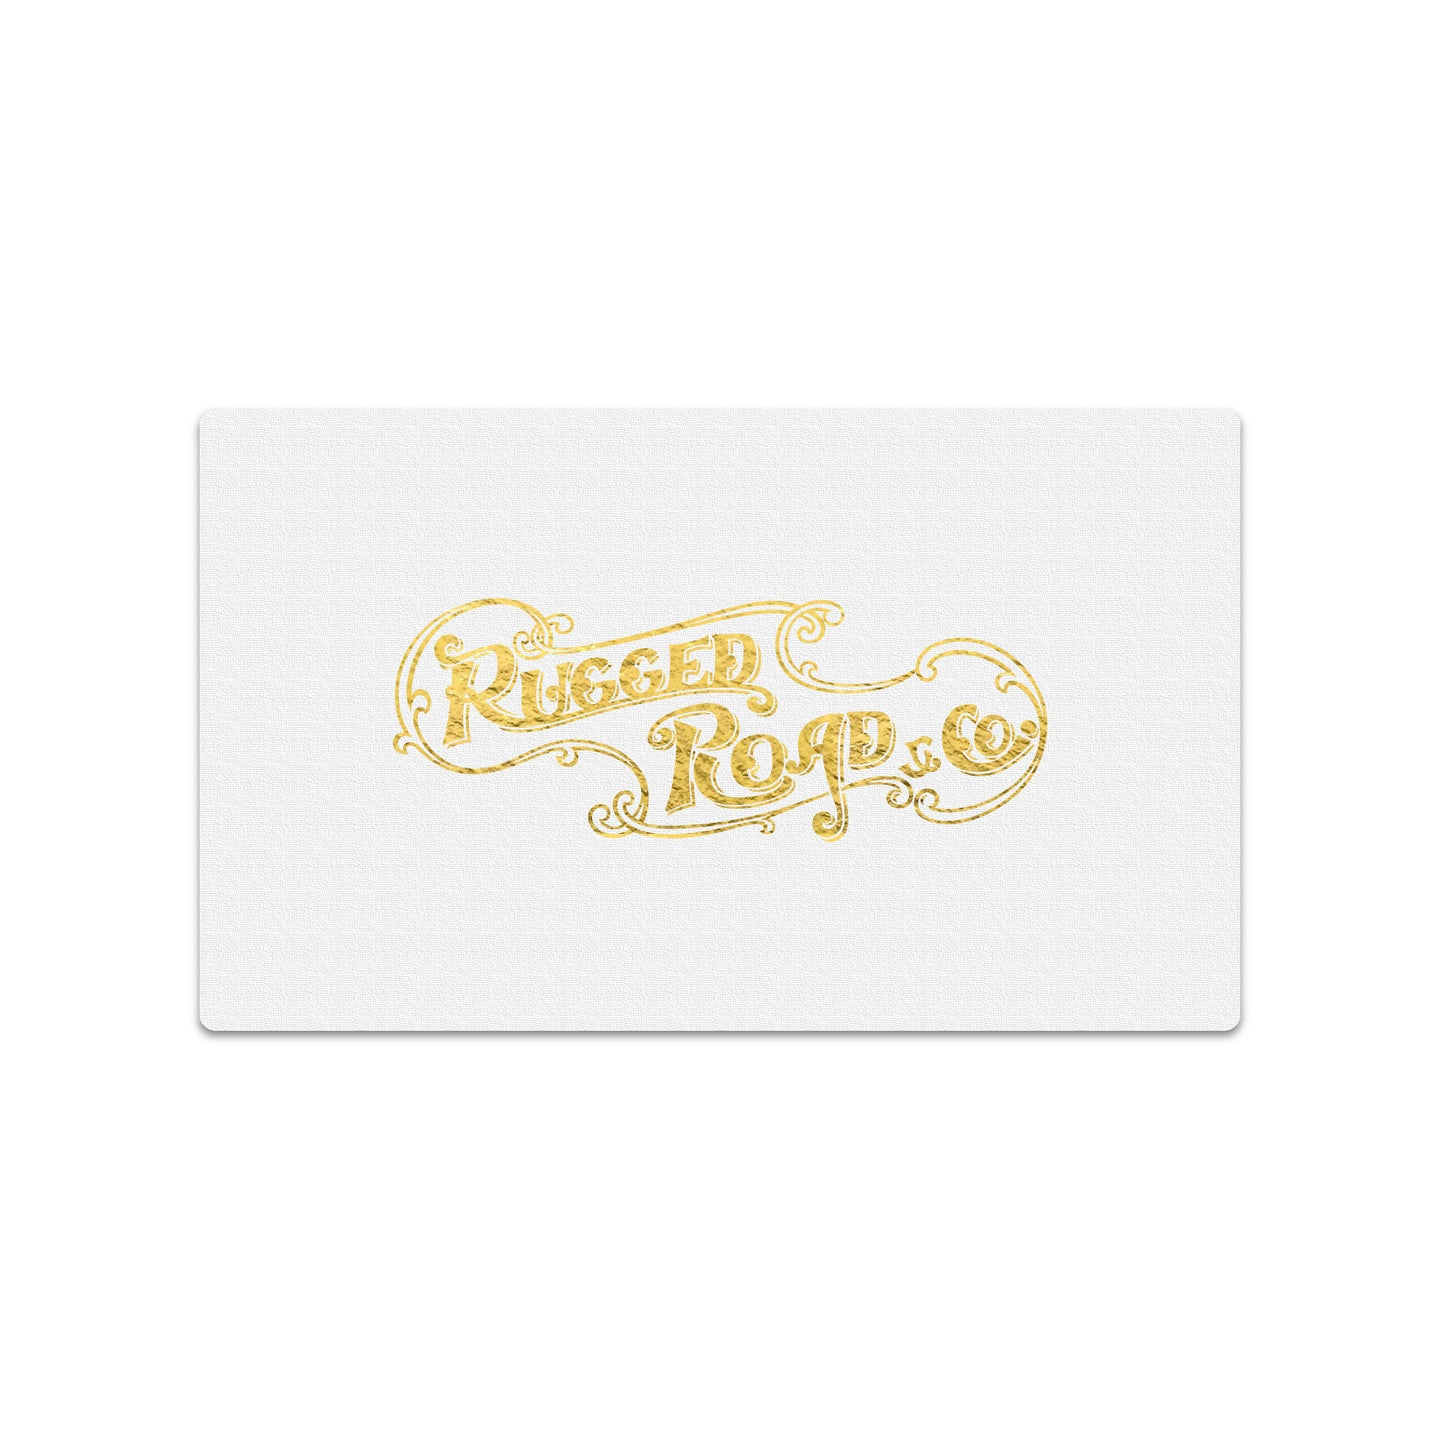 Rugged Road & Co. Gift Card